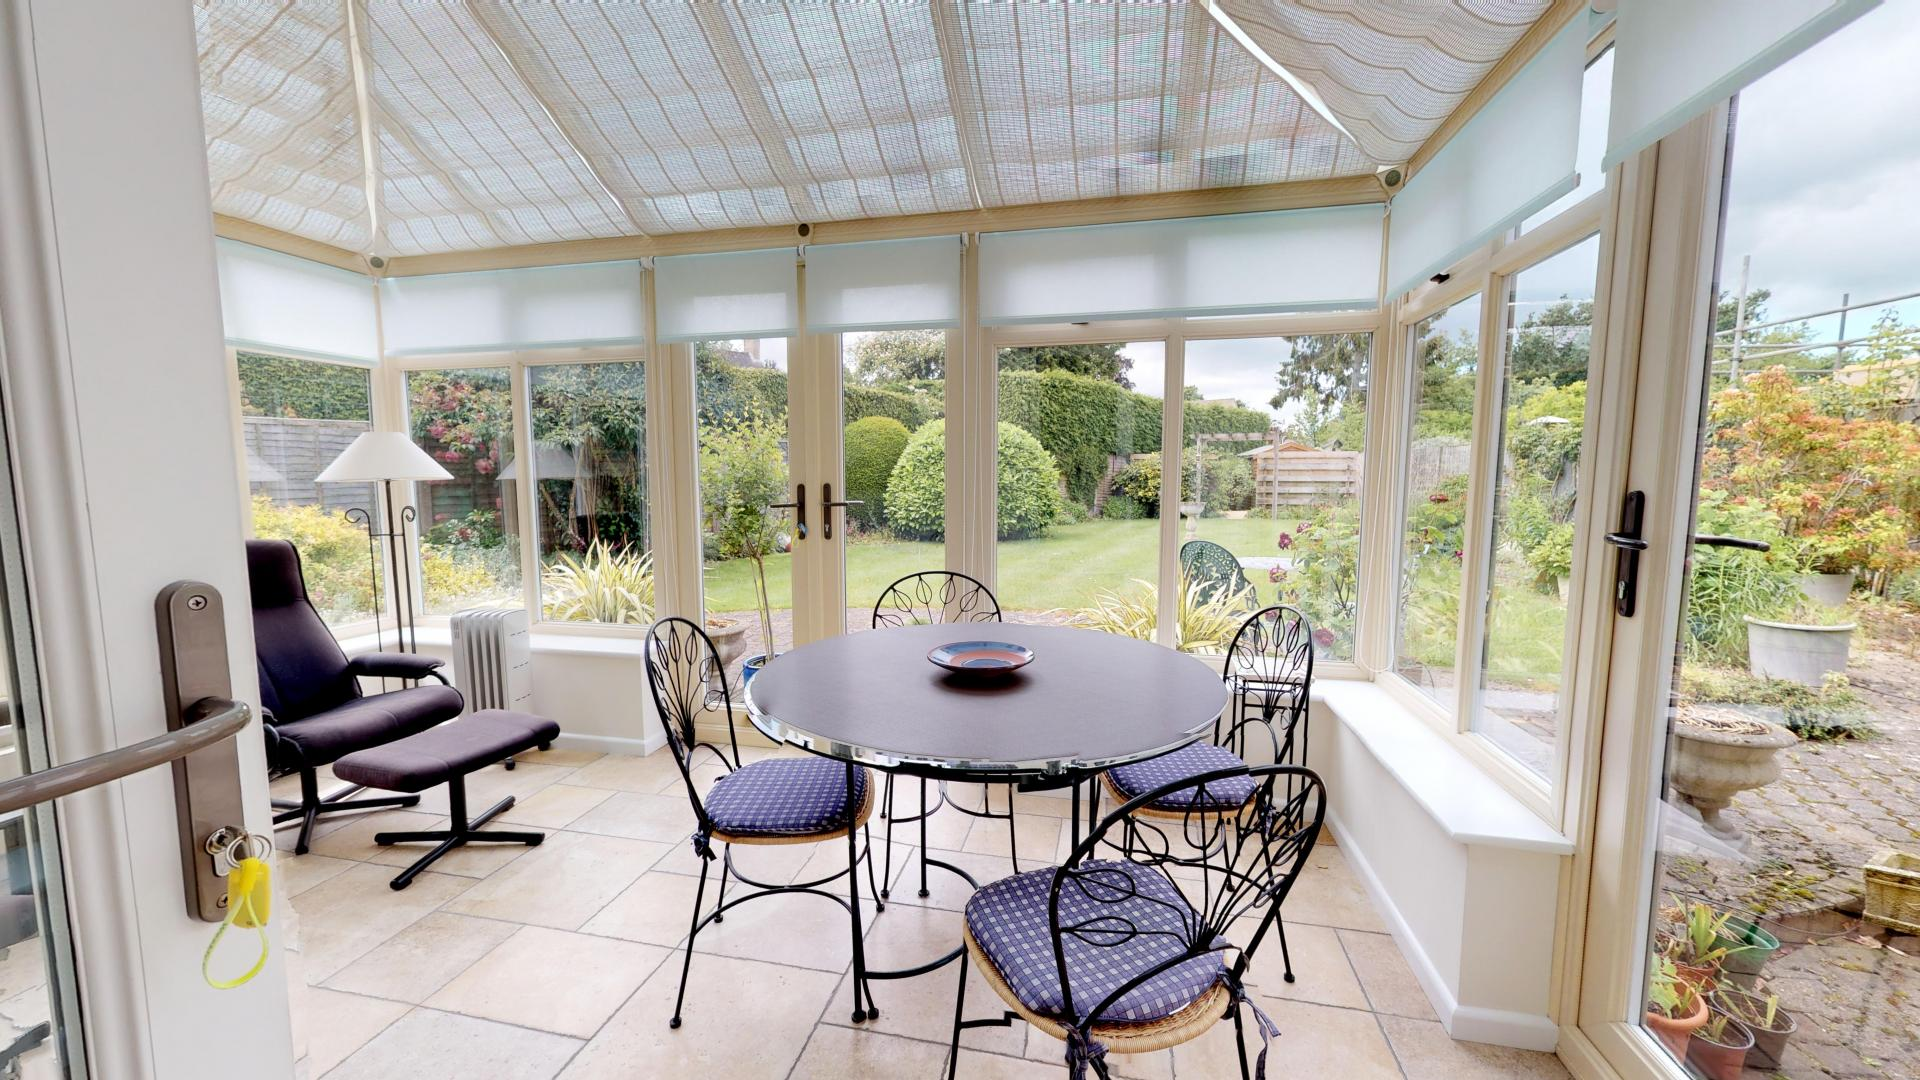 Dining area at Blenheim Gate House, Centre, Woodstock